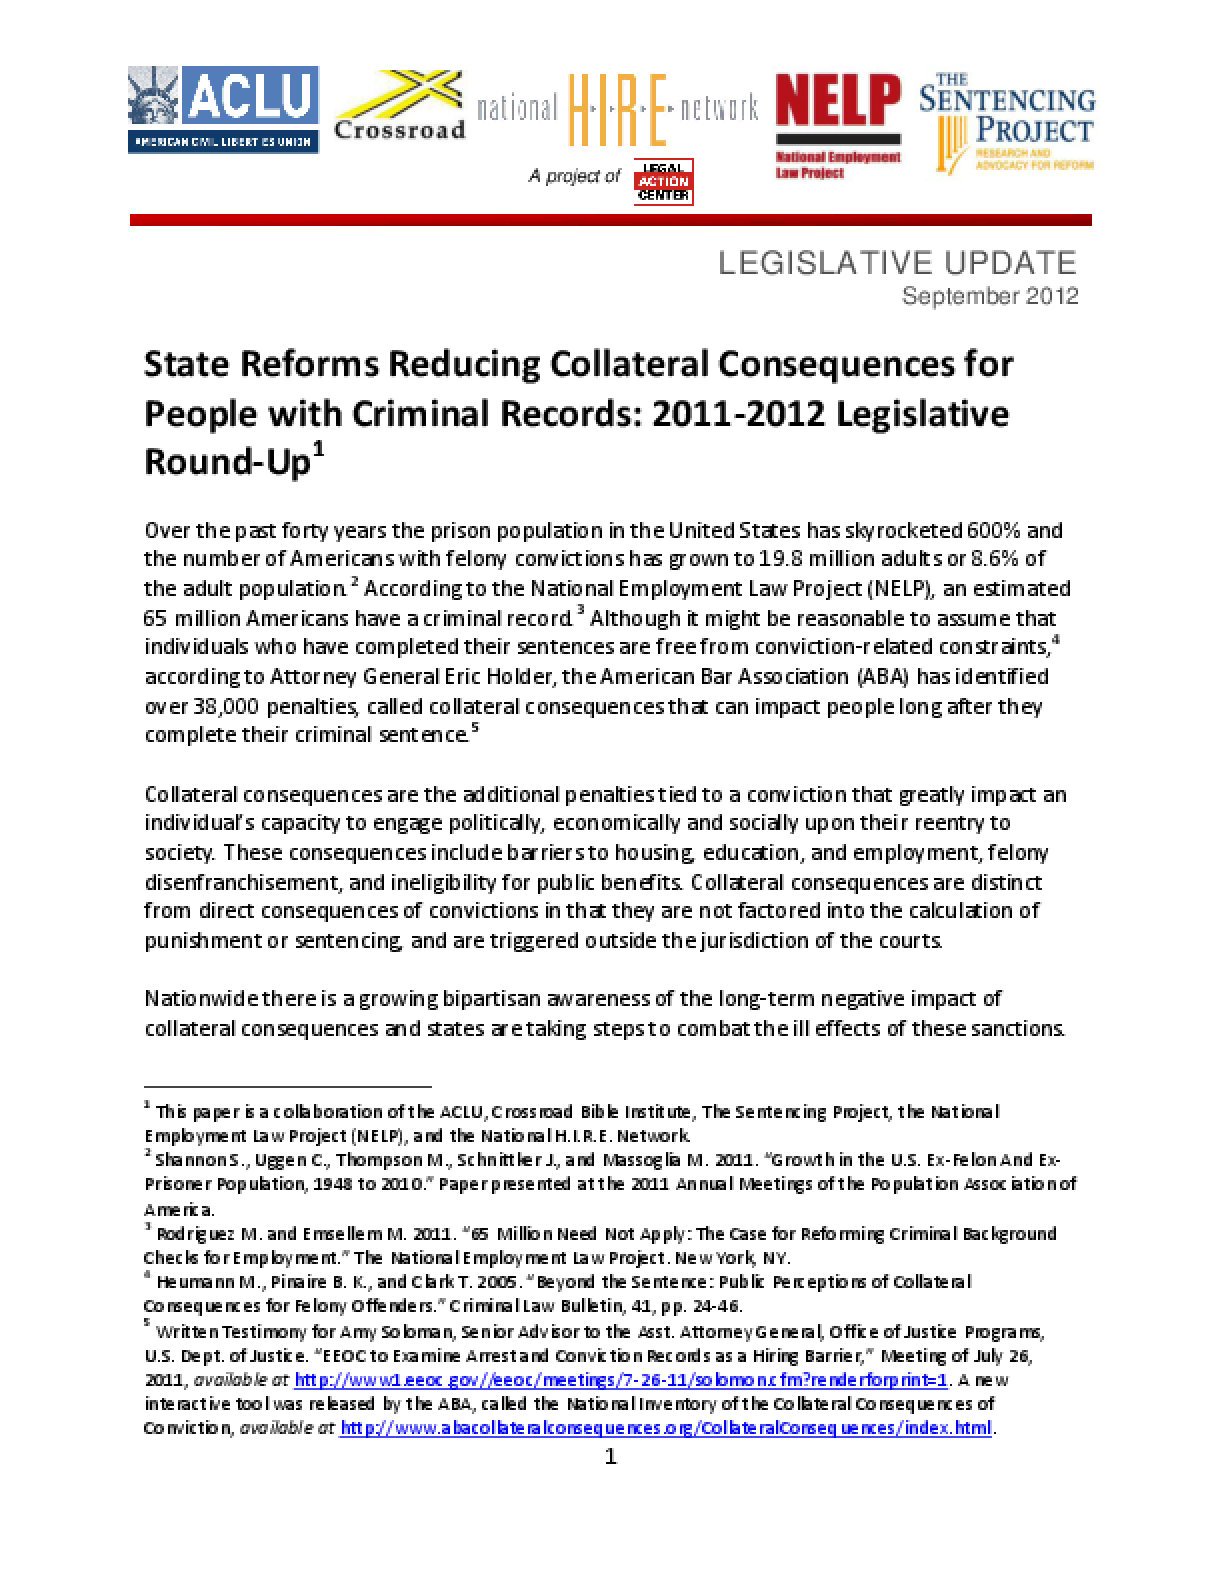 State Reforms Reducing Collateral Consequences for People with Criminal Records: 2011-2012 Legislative Round-Up